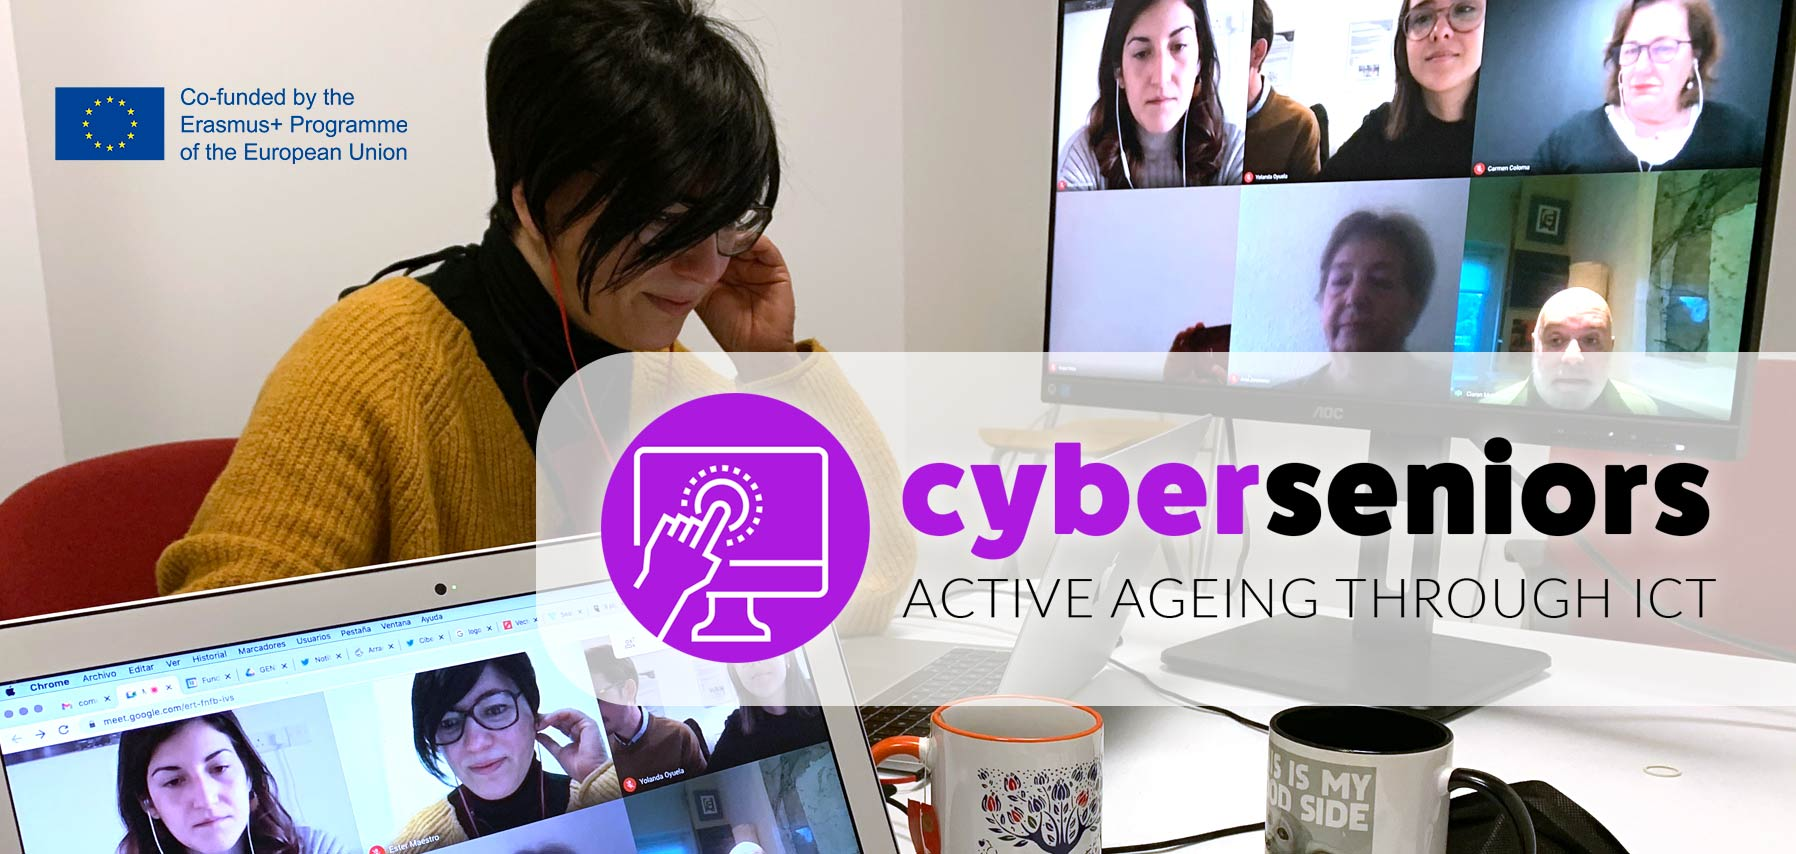 Cyberseniors' kickoff meeting: a program for Active Ageing through ICT